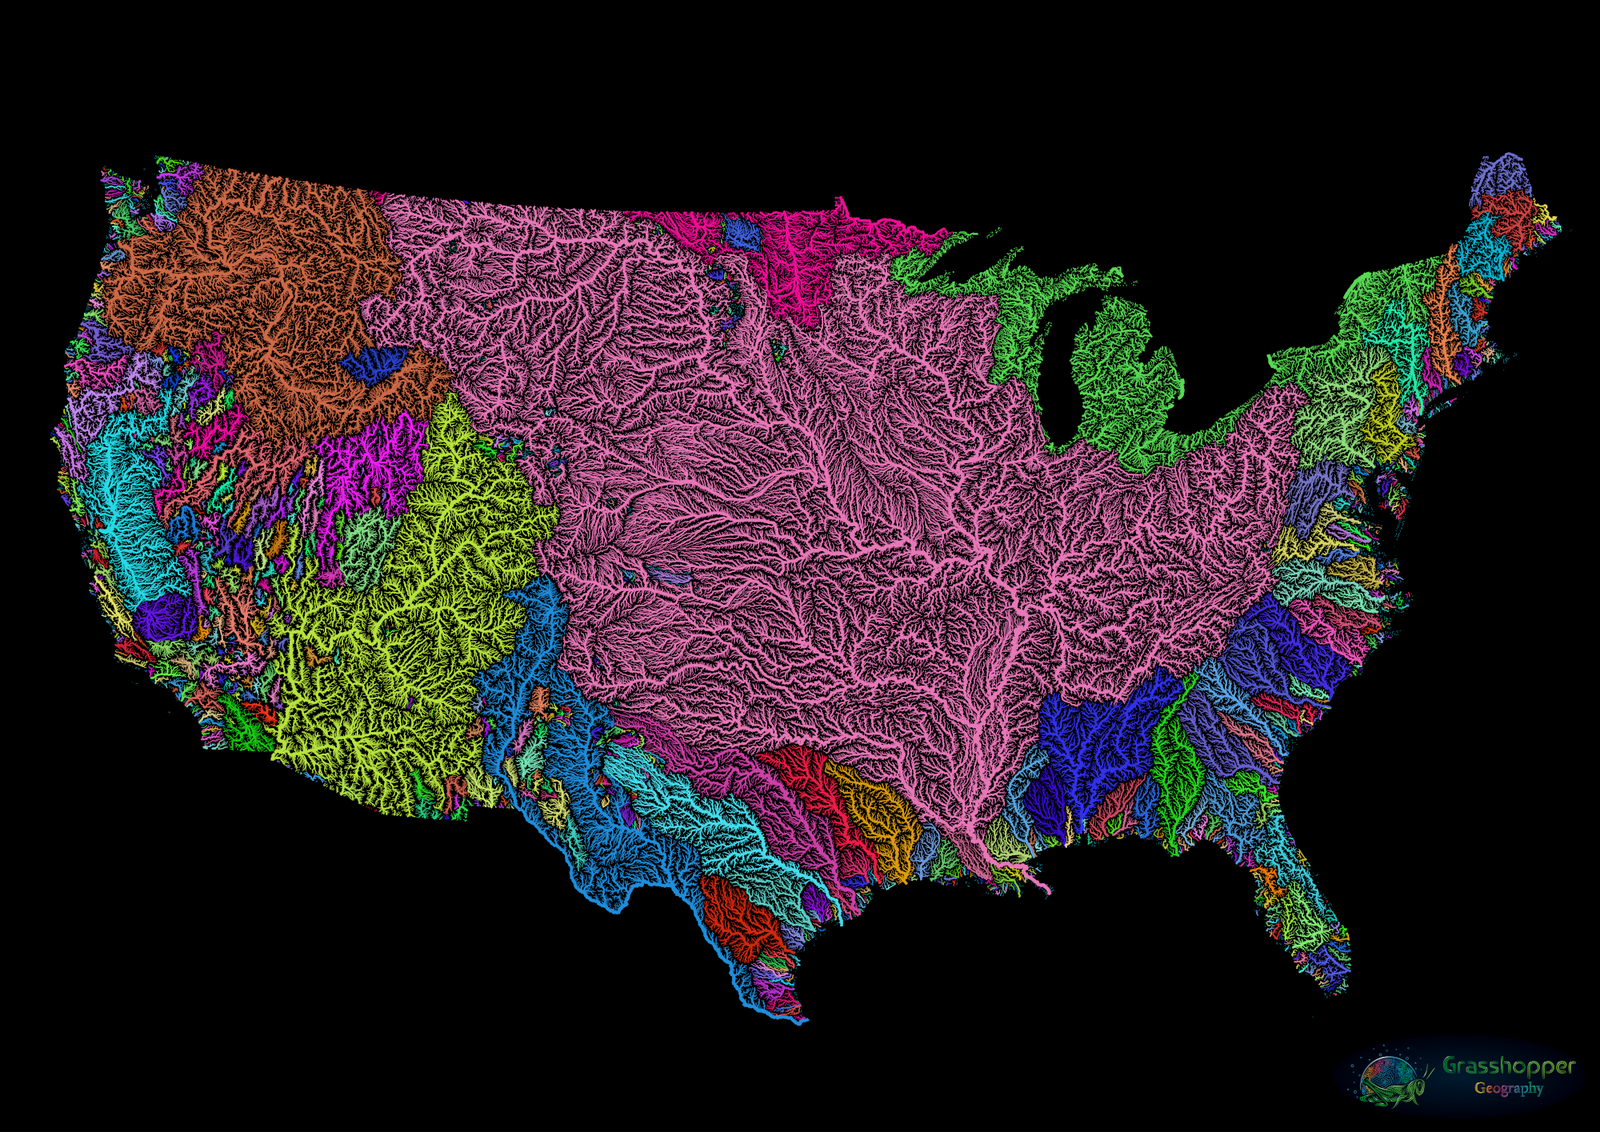 Us River Basin Map These Beautiful Maps Capture the Rivers That Pulse Through Our